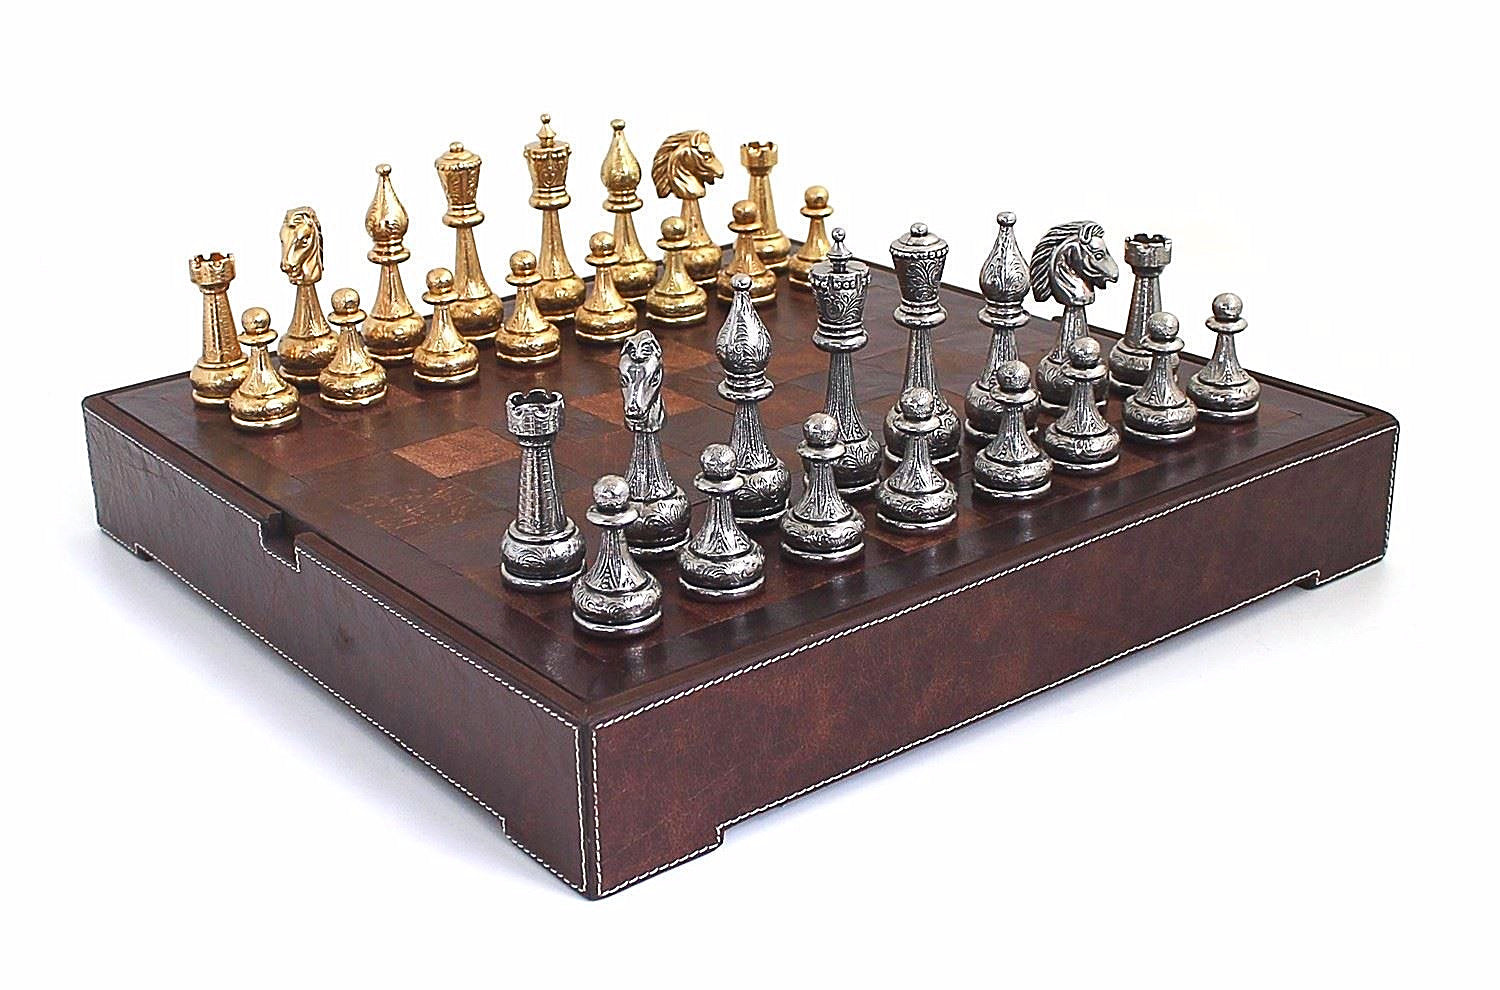 ensemble complet flowered echiquier et jeu d 39 echecs en. Black Bedroom Furniture Sets. Home Design Ideas